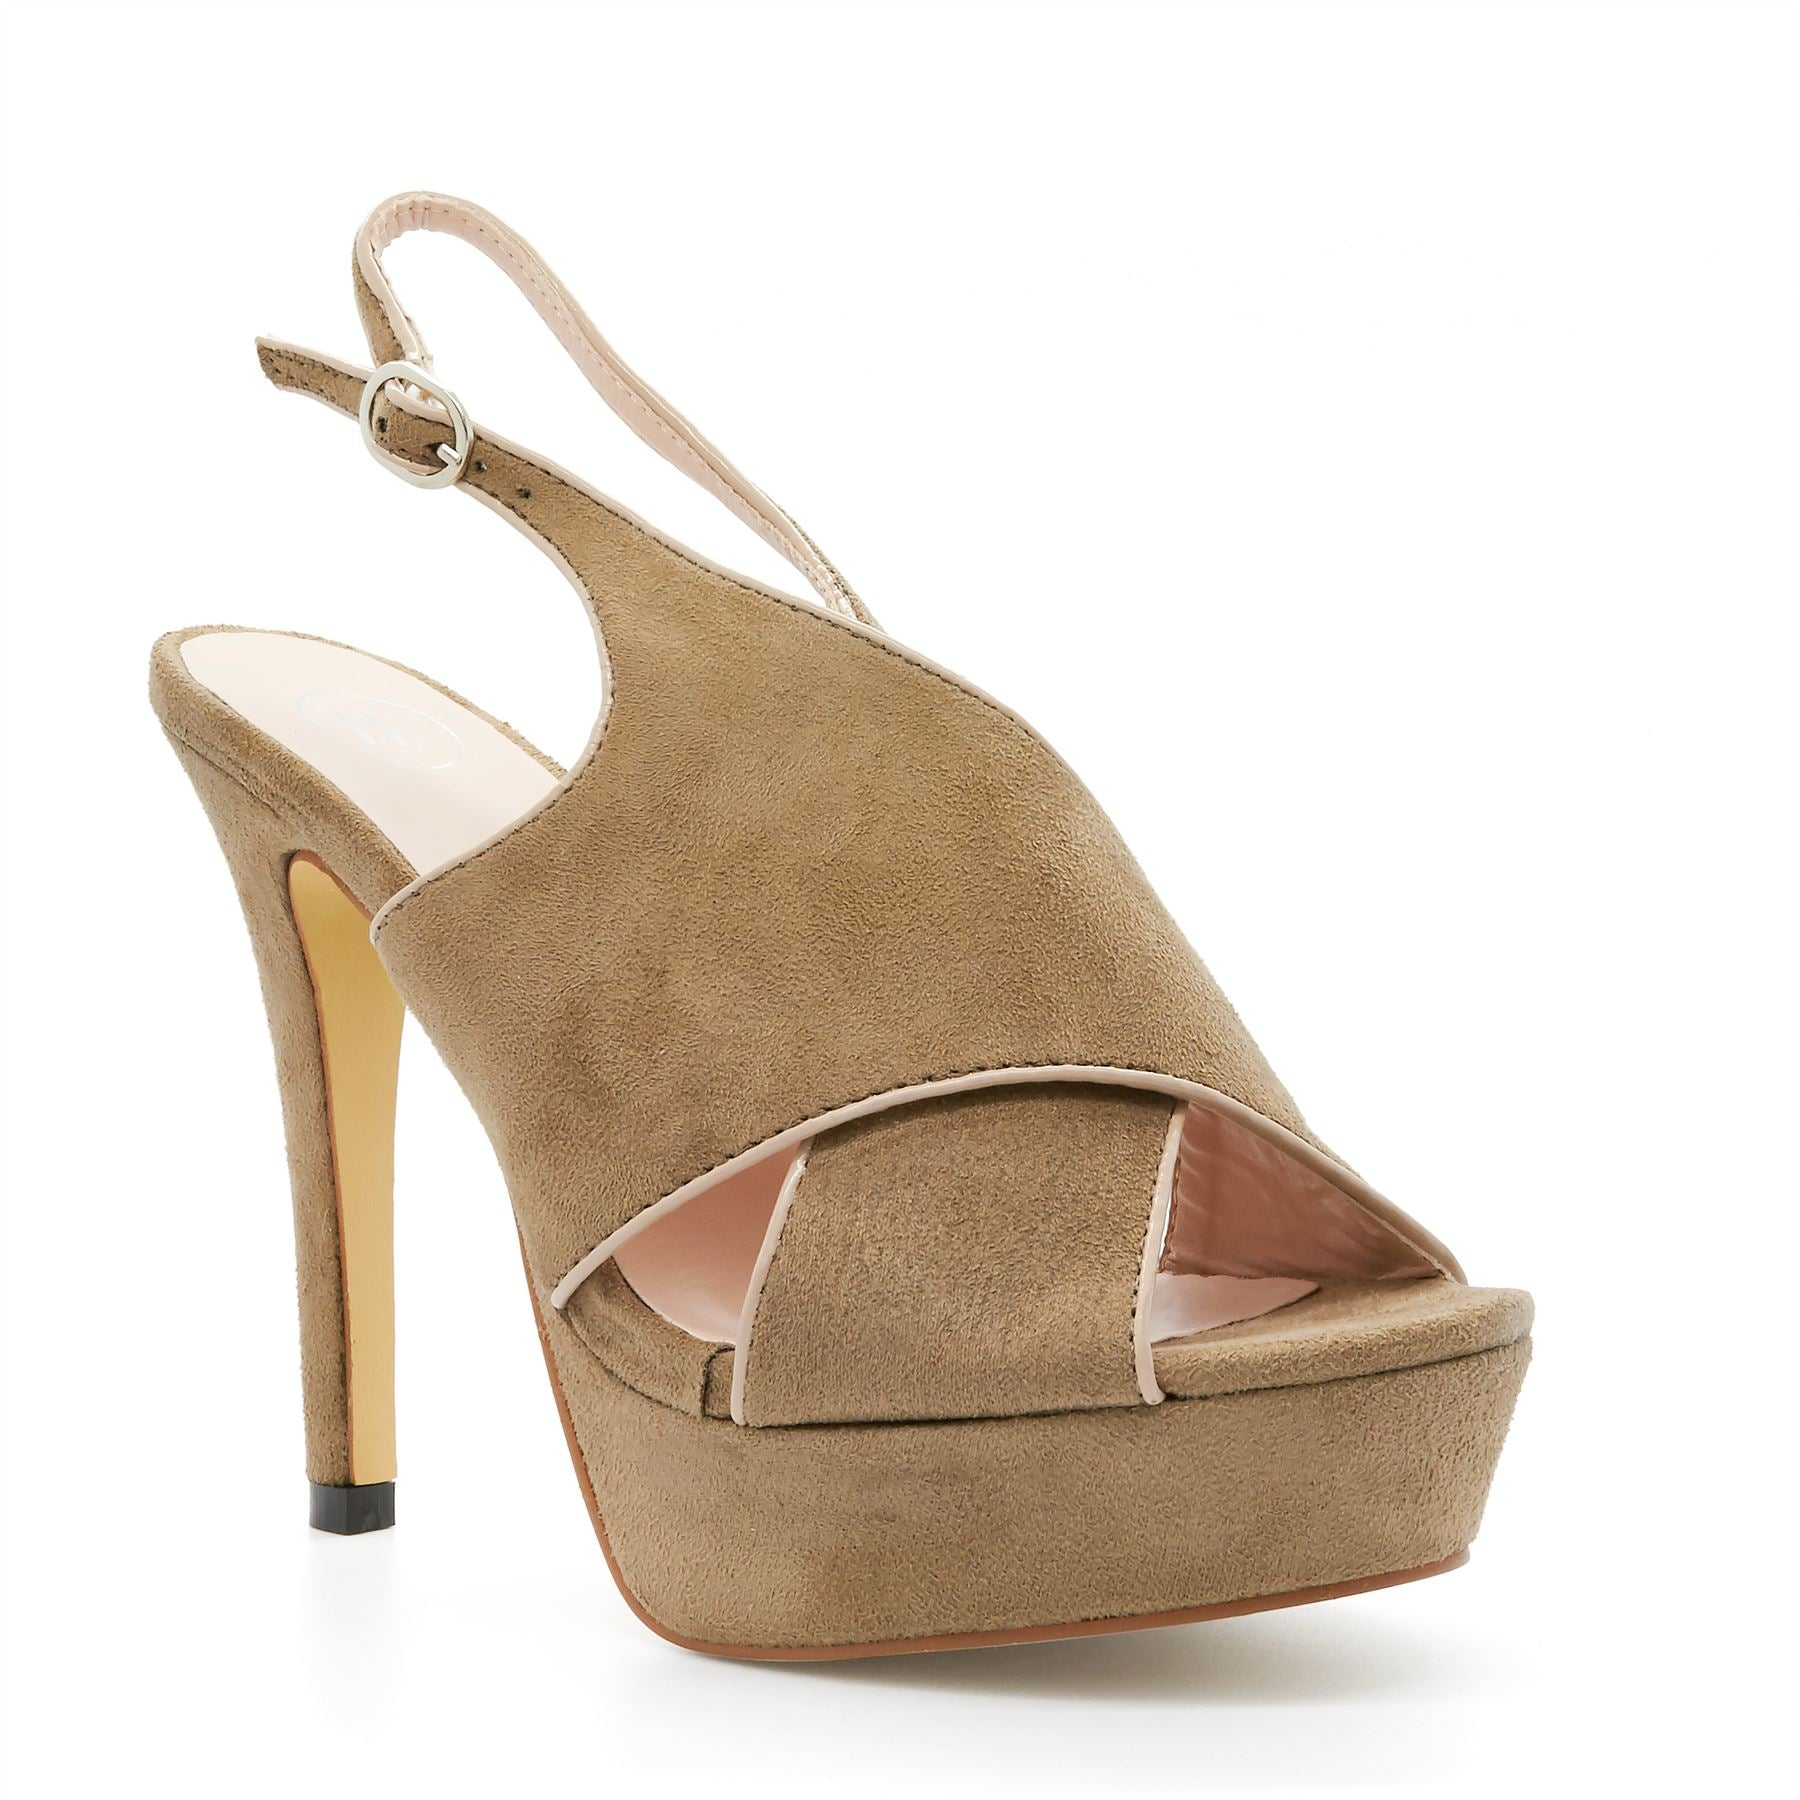 Tan Peep Toe Heeled Sandals